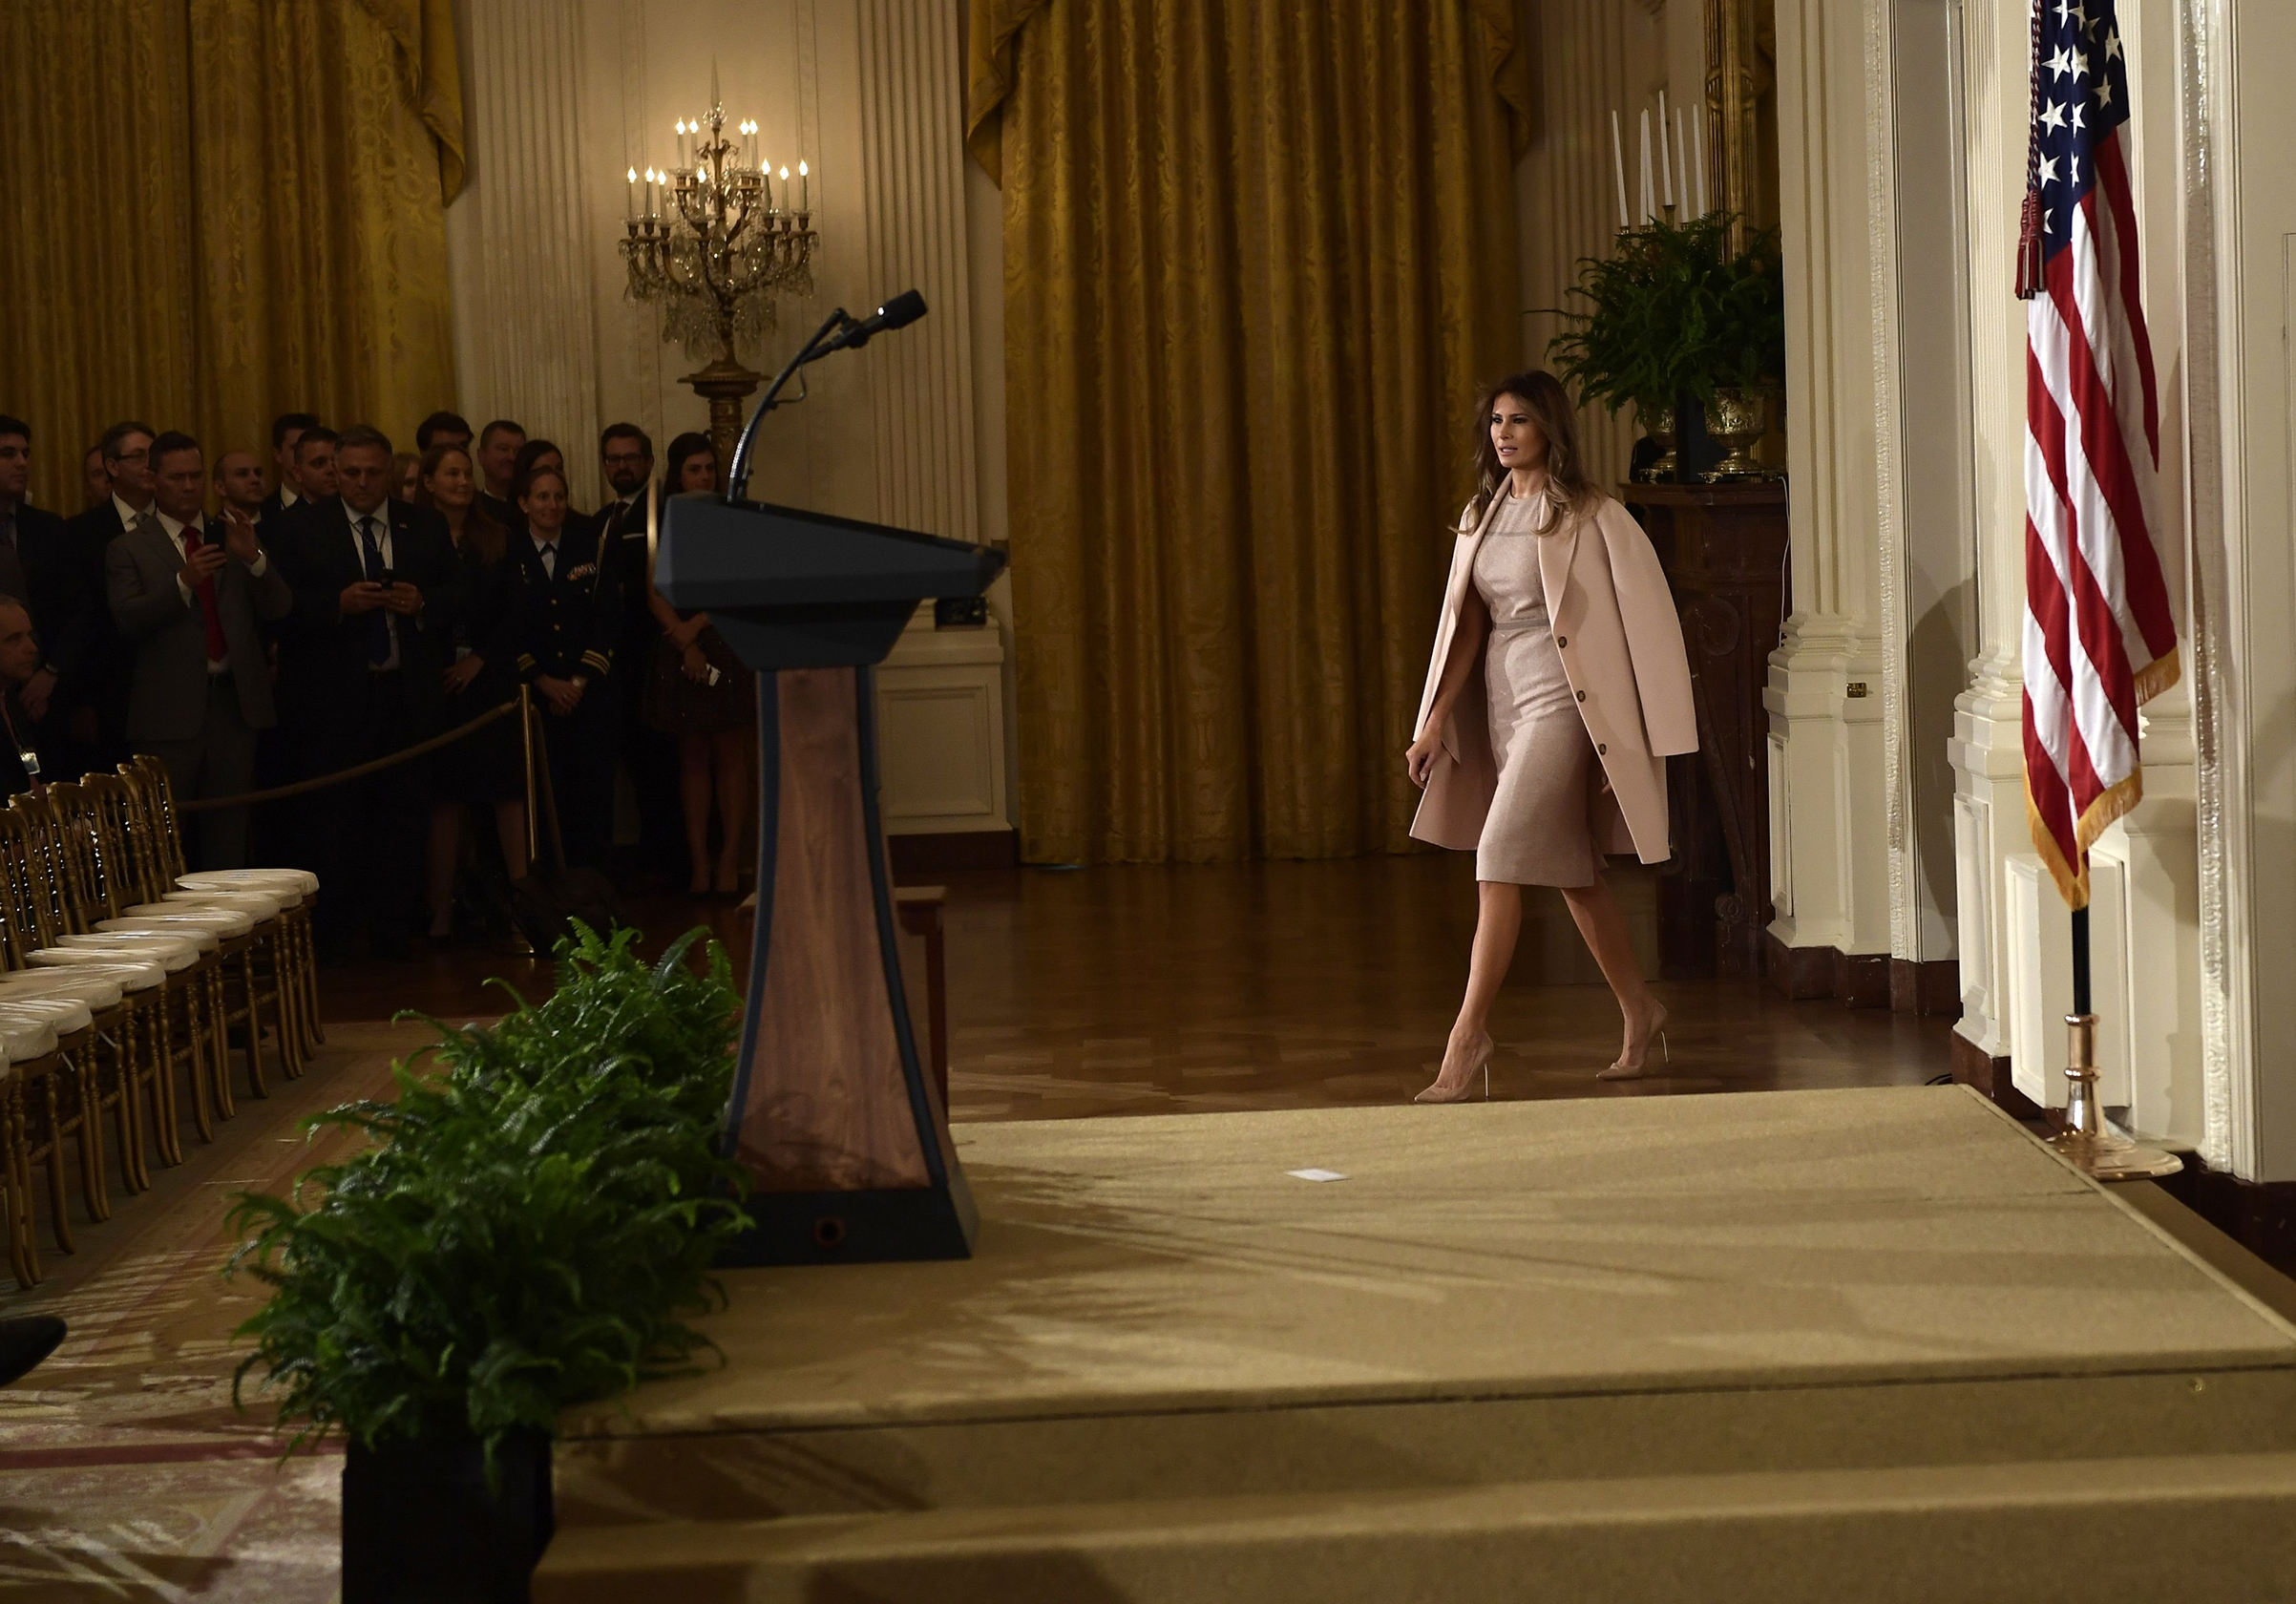 First lady Melania Trump wearing a beige dress by Agnona and a pale pink coat from Acne Studios, arrives for an event Oct. 12, 2017 at the White House in Washington, D.C.